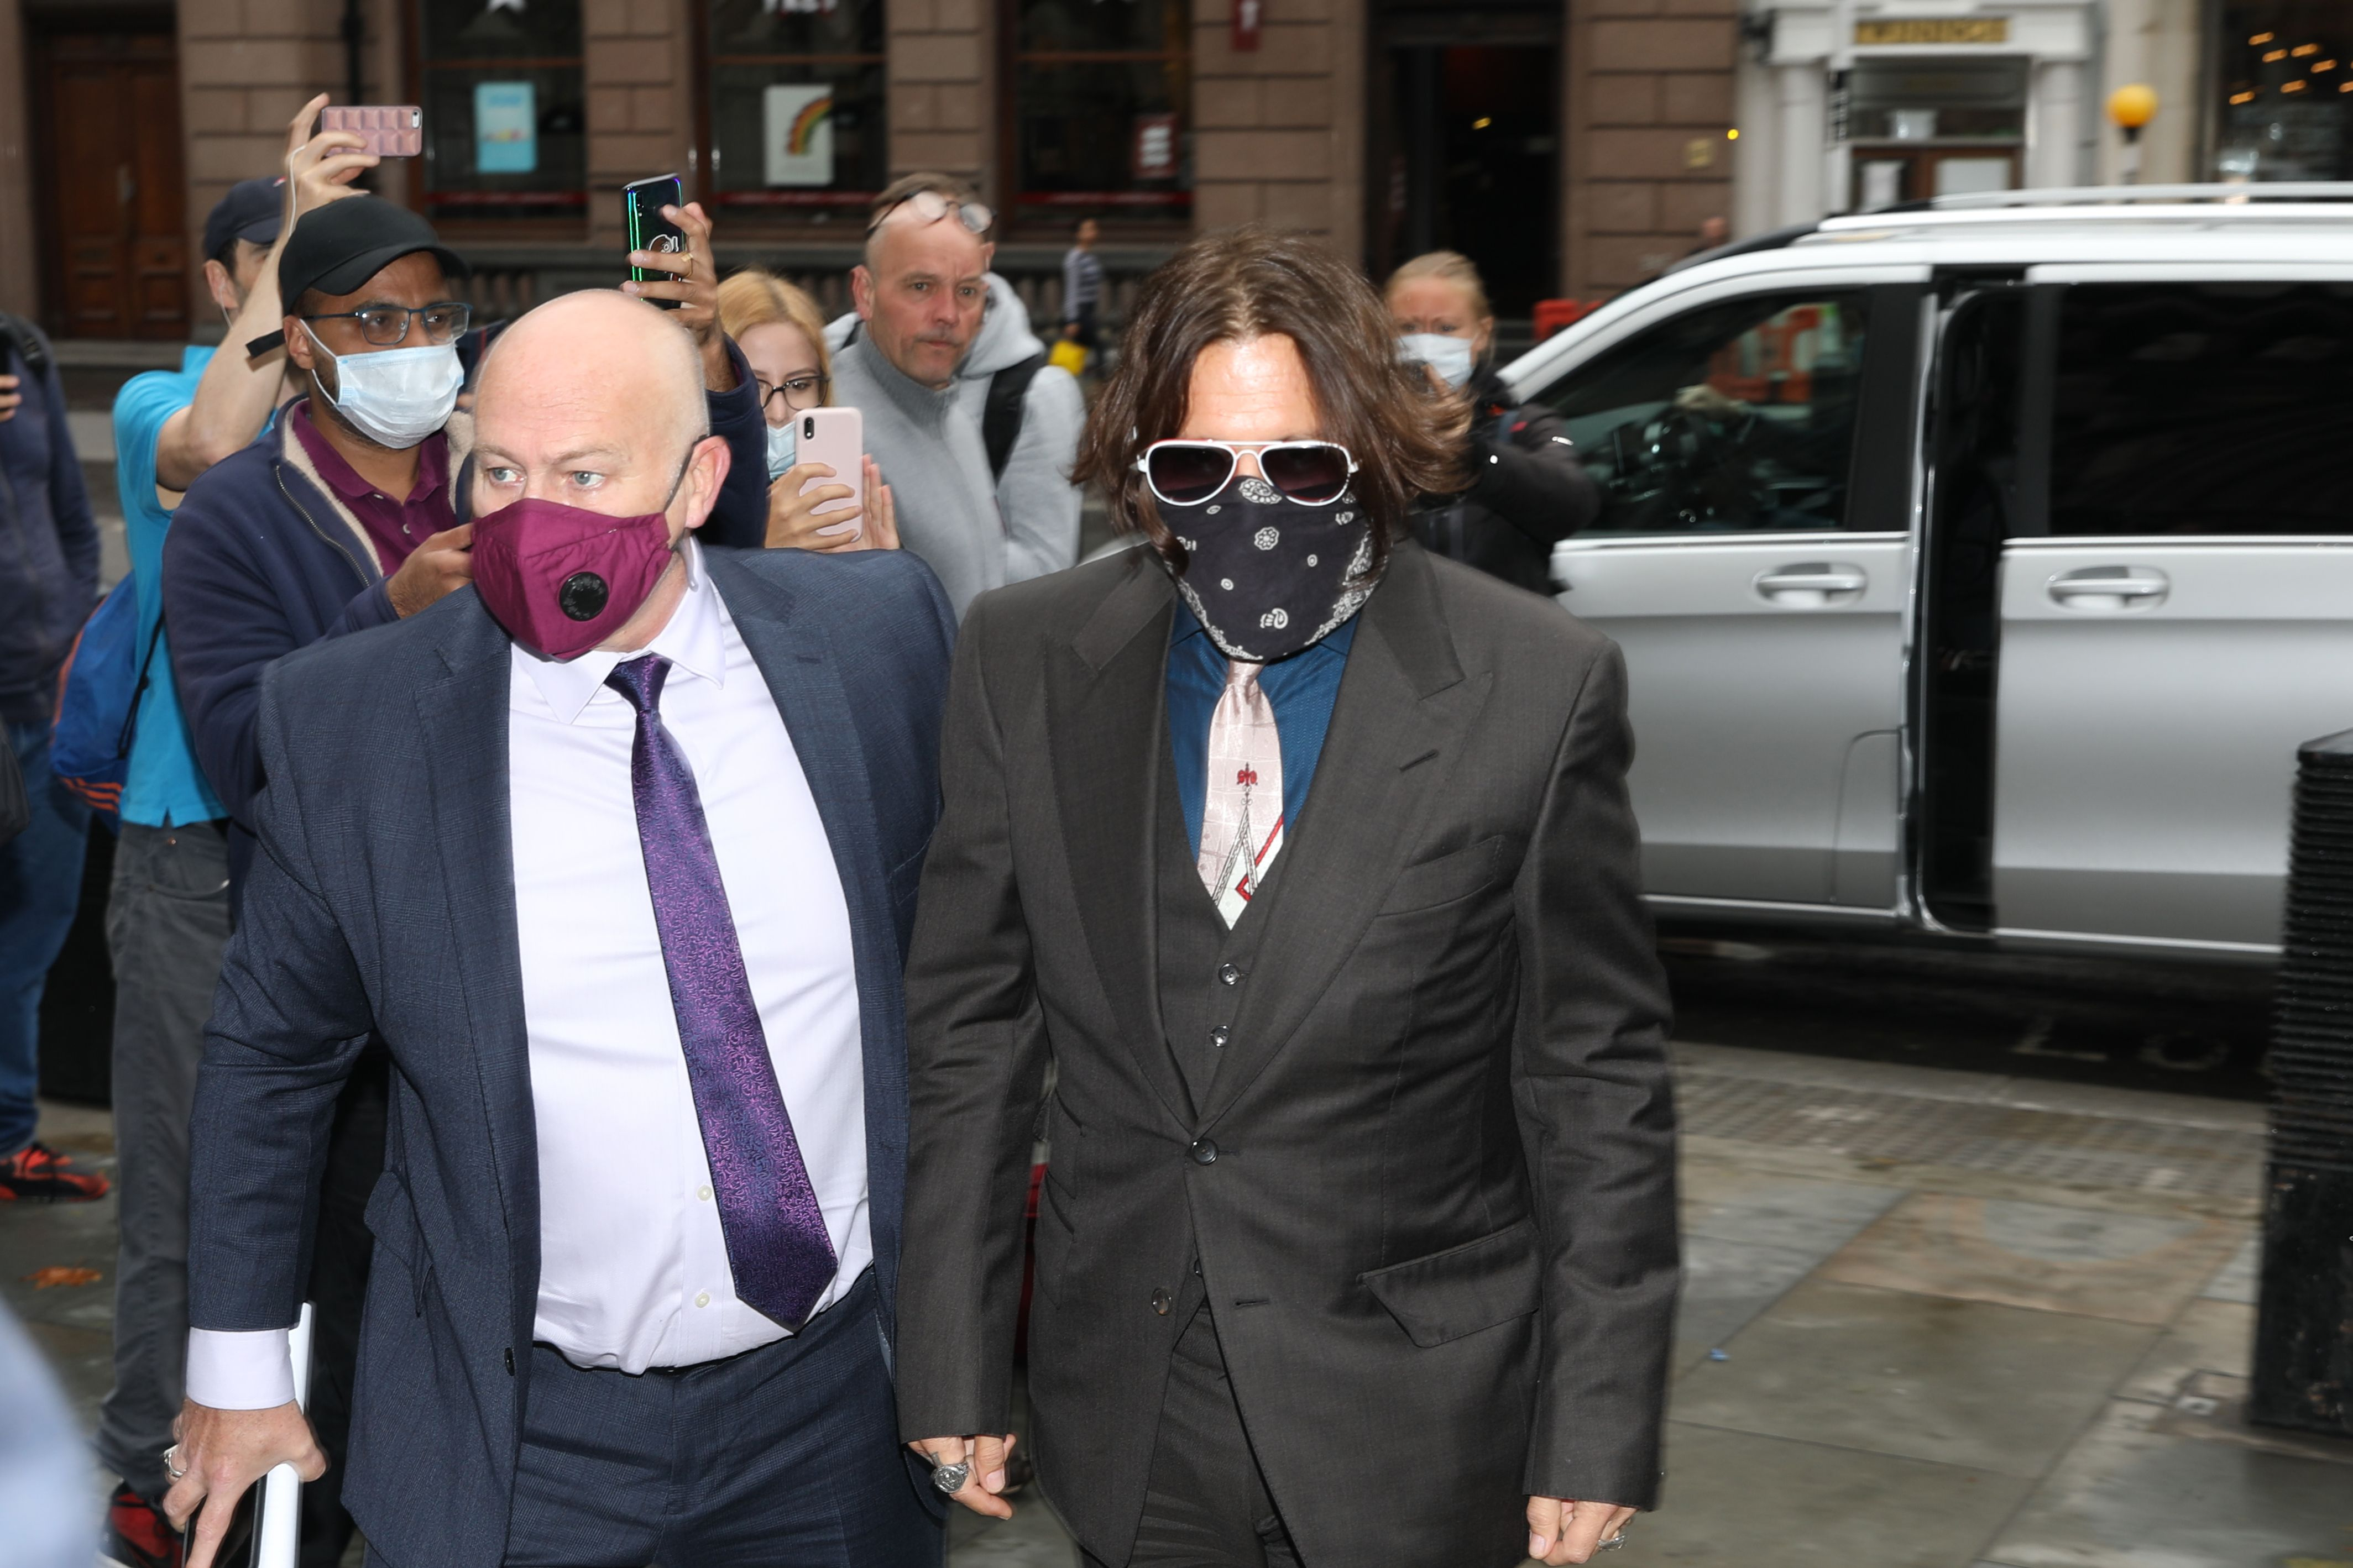 """US actor Johnny Depp (C), wearing a face mask or covering due to the COVID-19 pandemic, arrives on the second day of his libel trial against News Group Newspapers (NGN), at the High Court in London, on July 8, 2020. - Depp is suing the publishers of The Sun and the author of the article for the claims that called him a """"wife-beater"""" in April 2018. (Photo by ISABEL INFANTES/AFP via Getty Images)"""